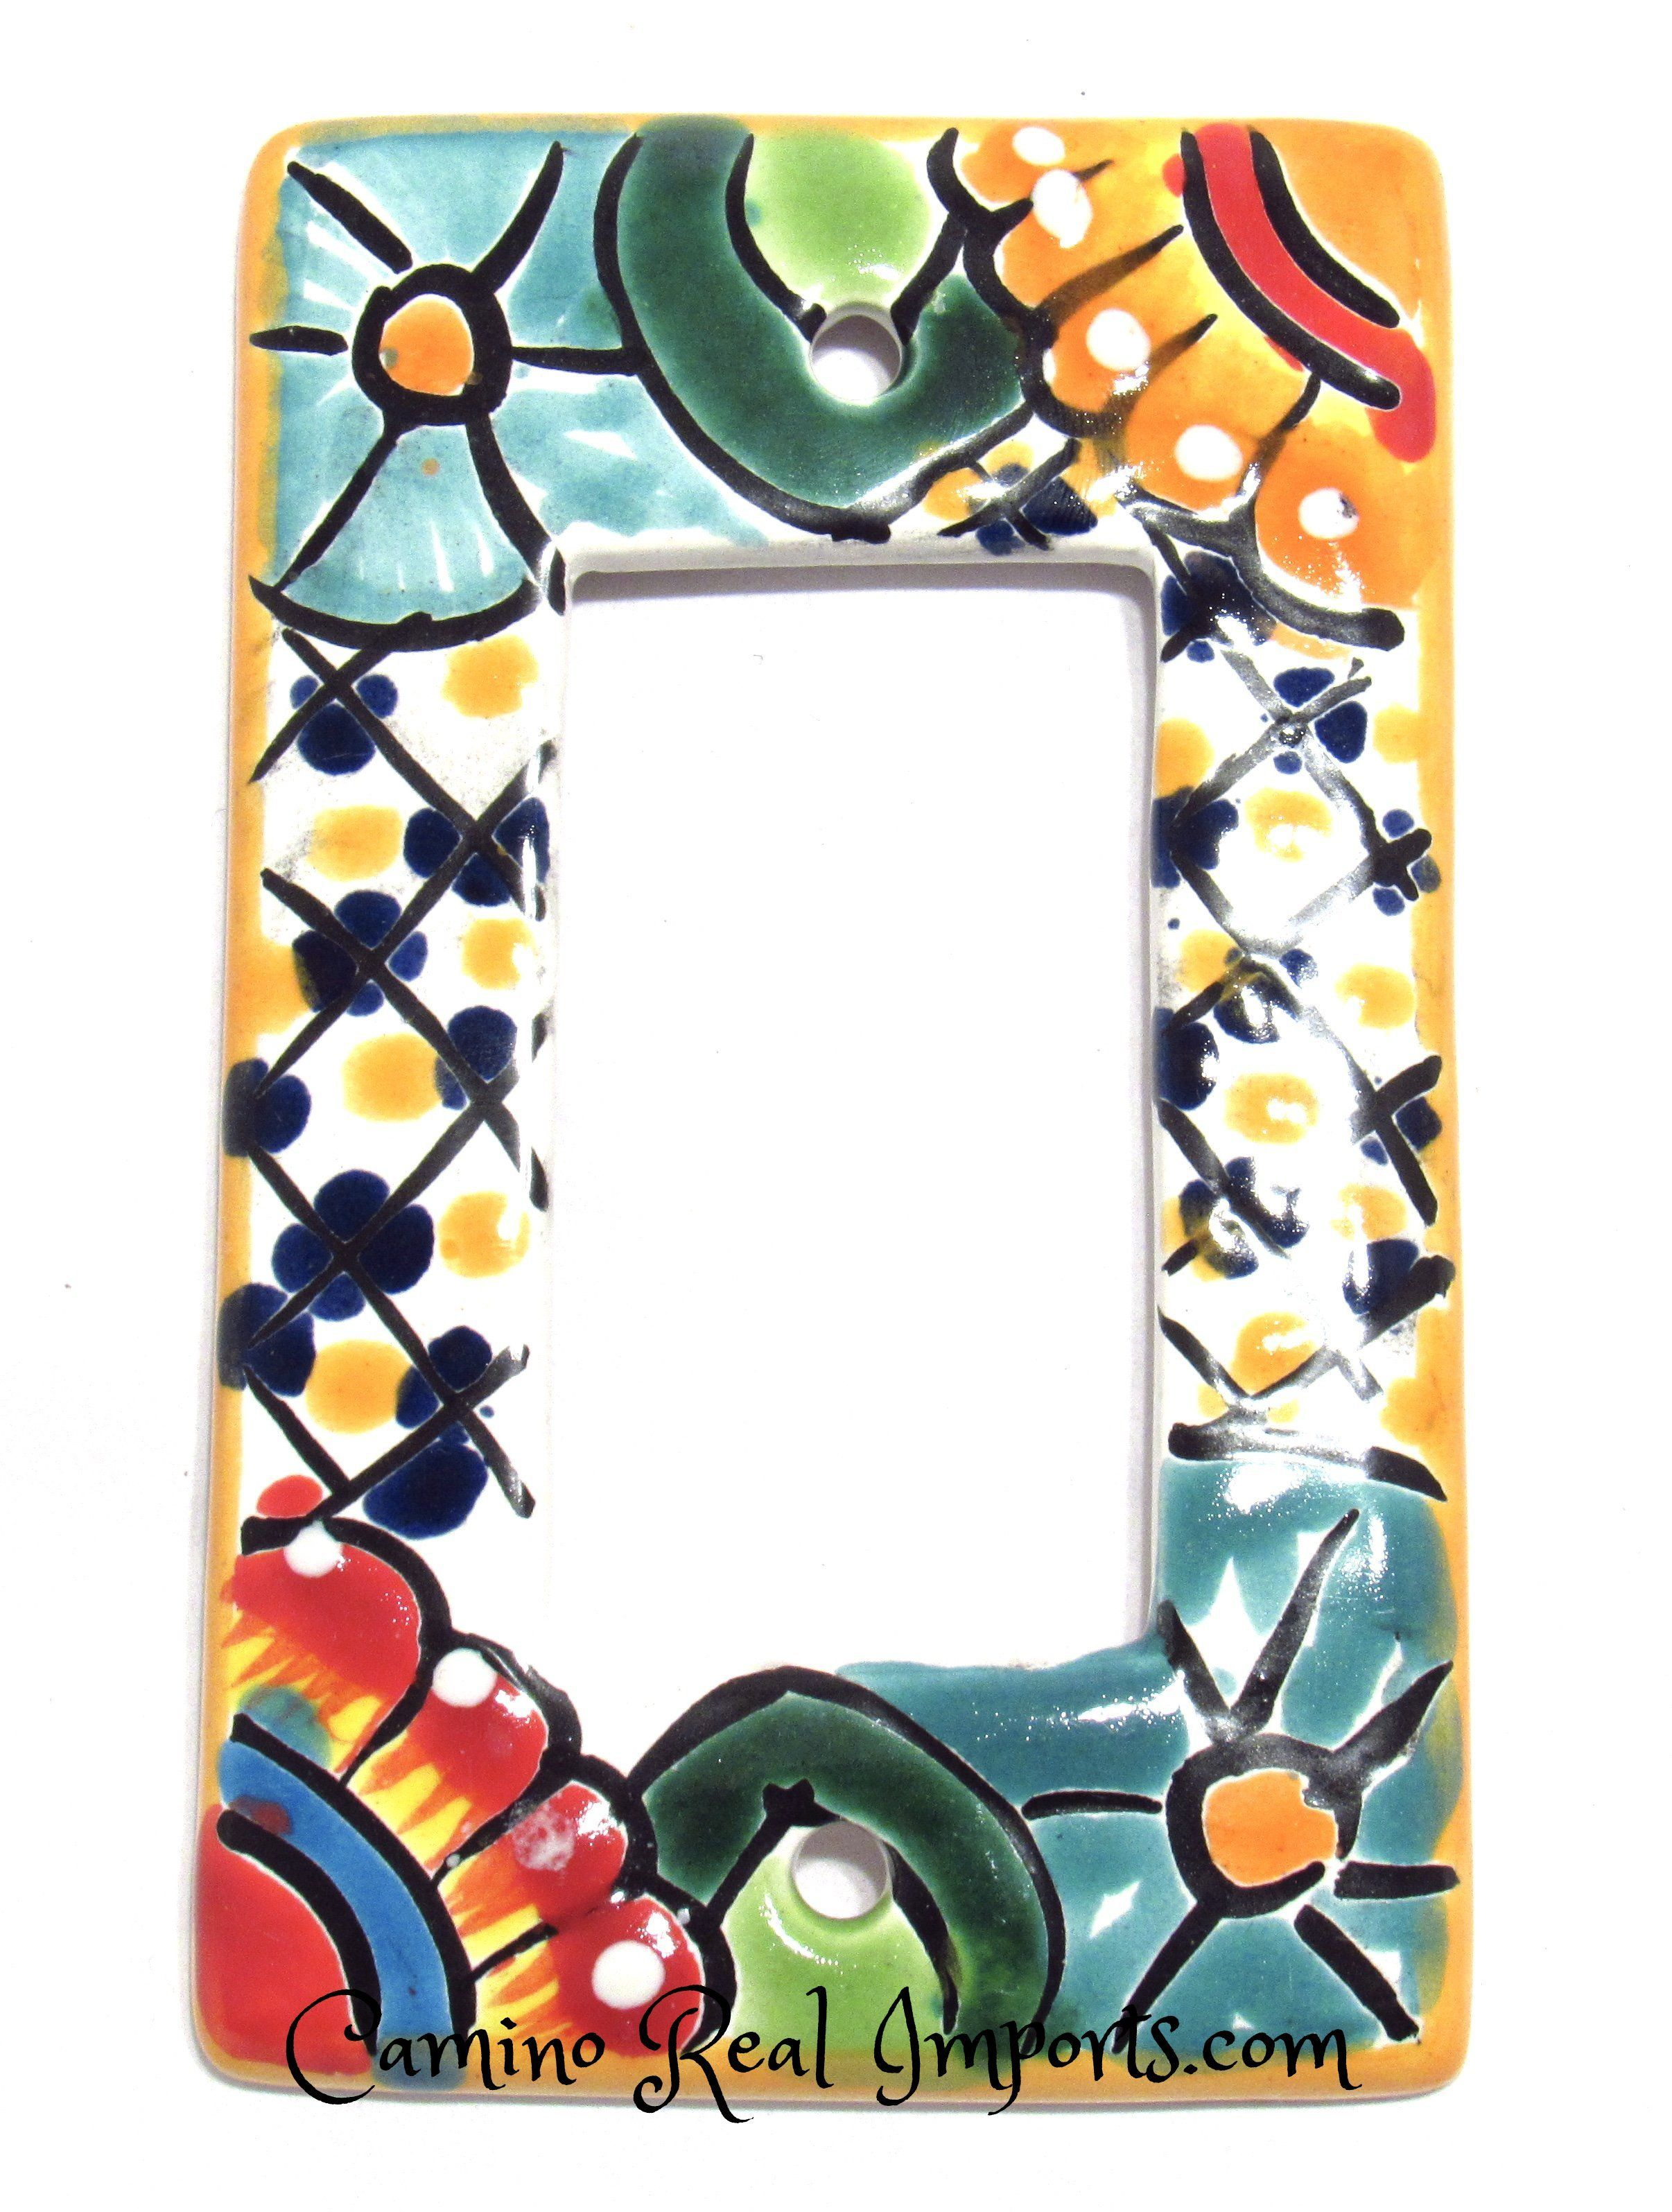 Mexican Talavera Electrical Outlet Cover Plates Designs and Colors Vary!